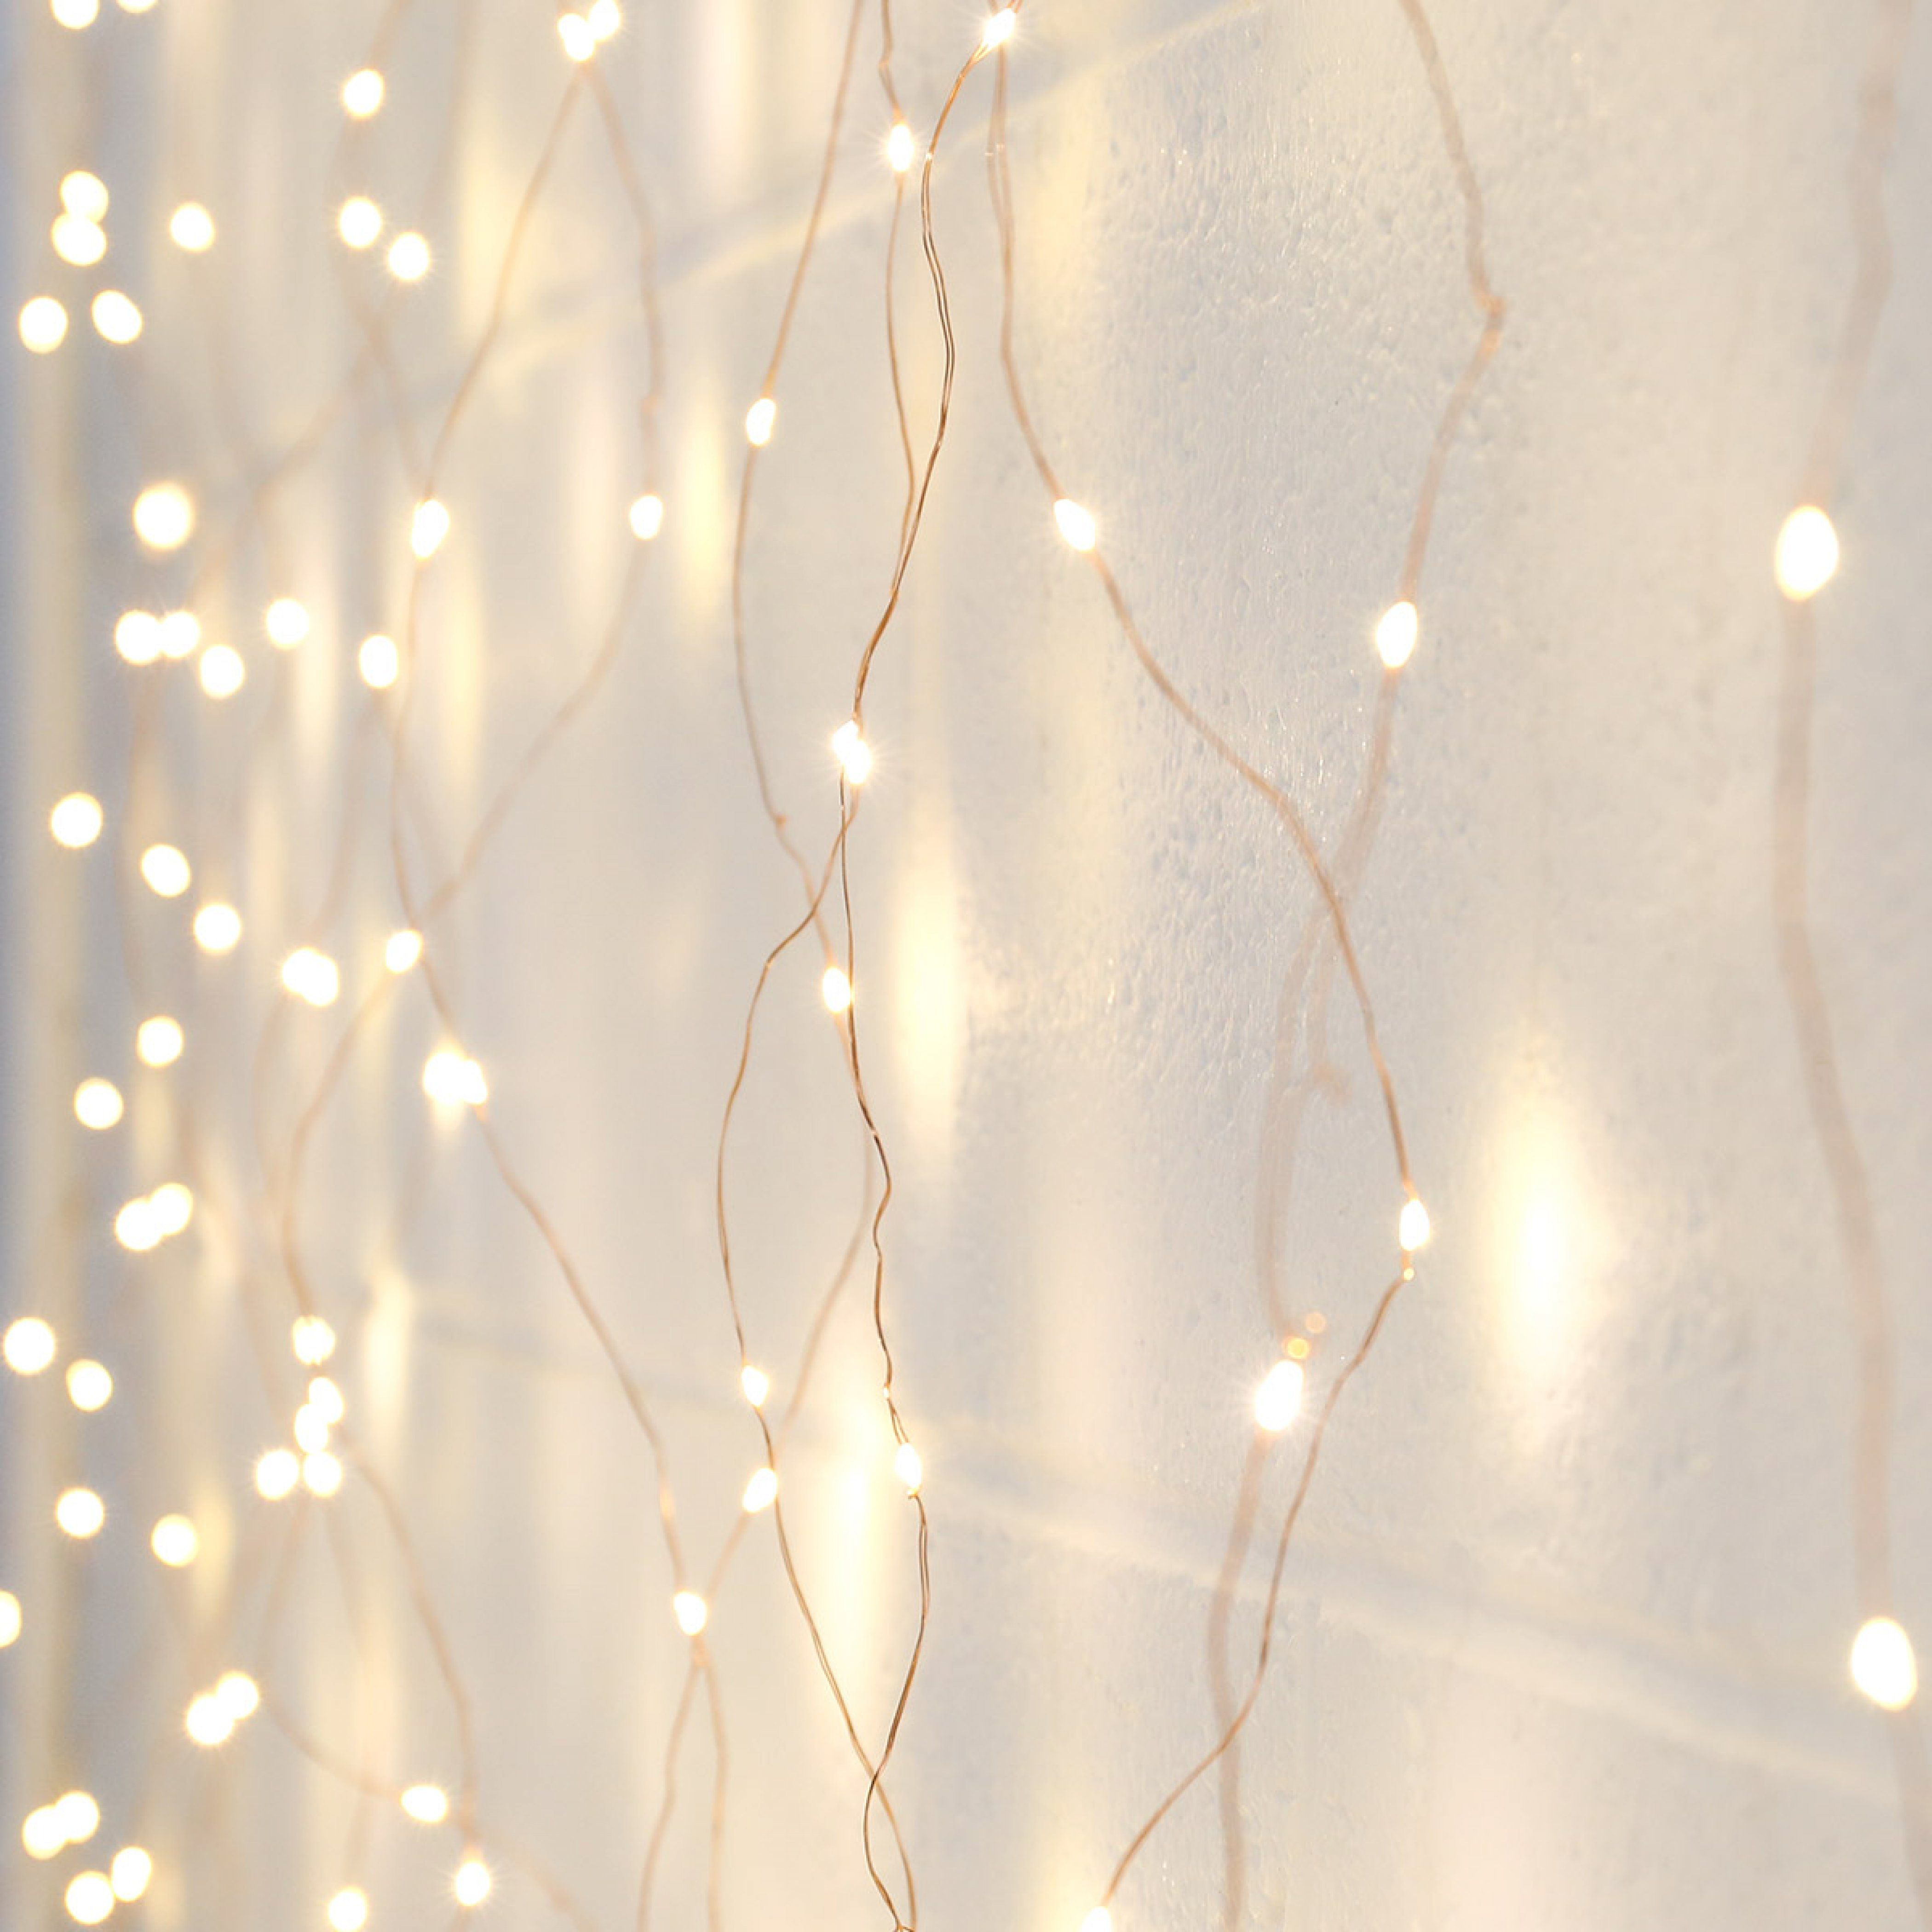 2m X 2m Plug In Copper Firefly Wire Curtain Lights 400 Warm White